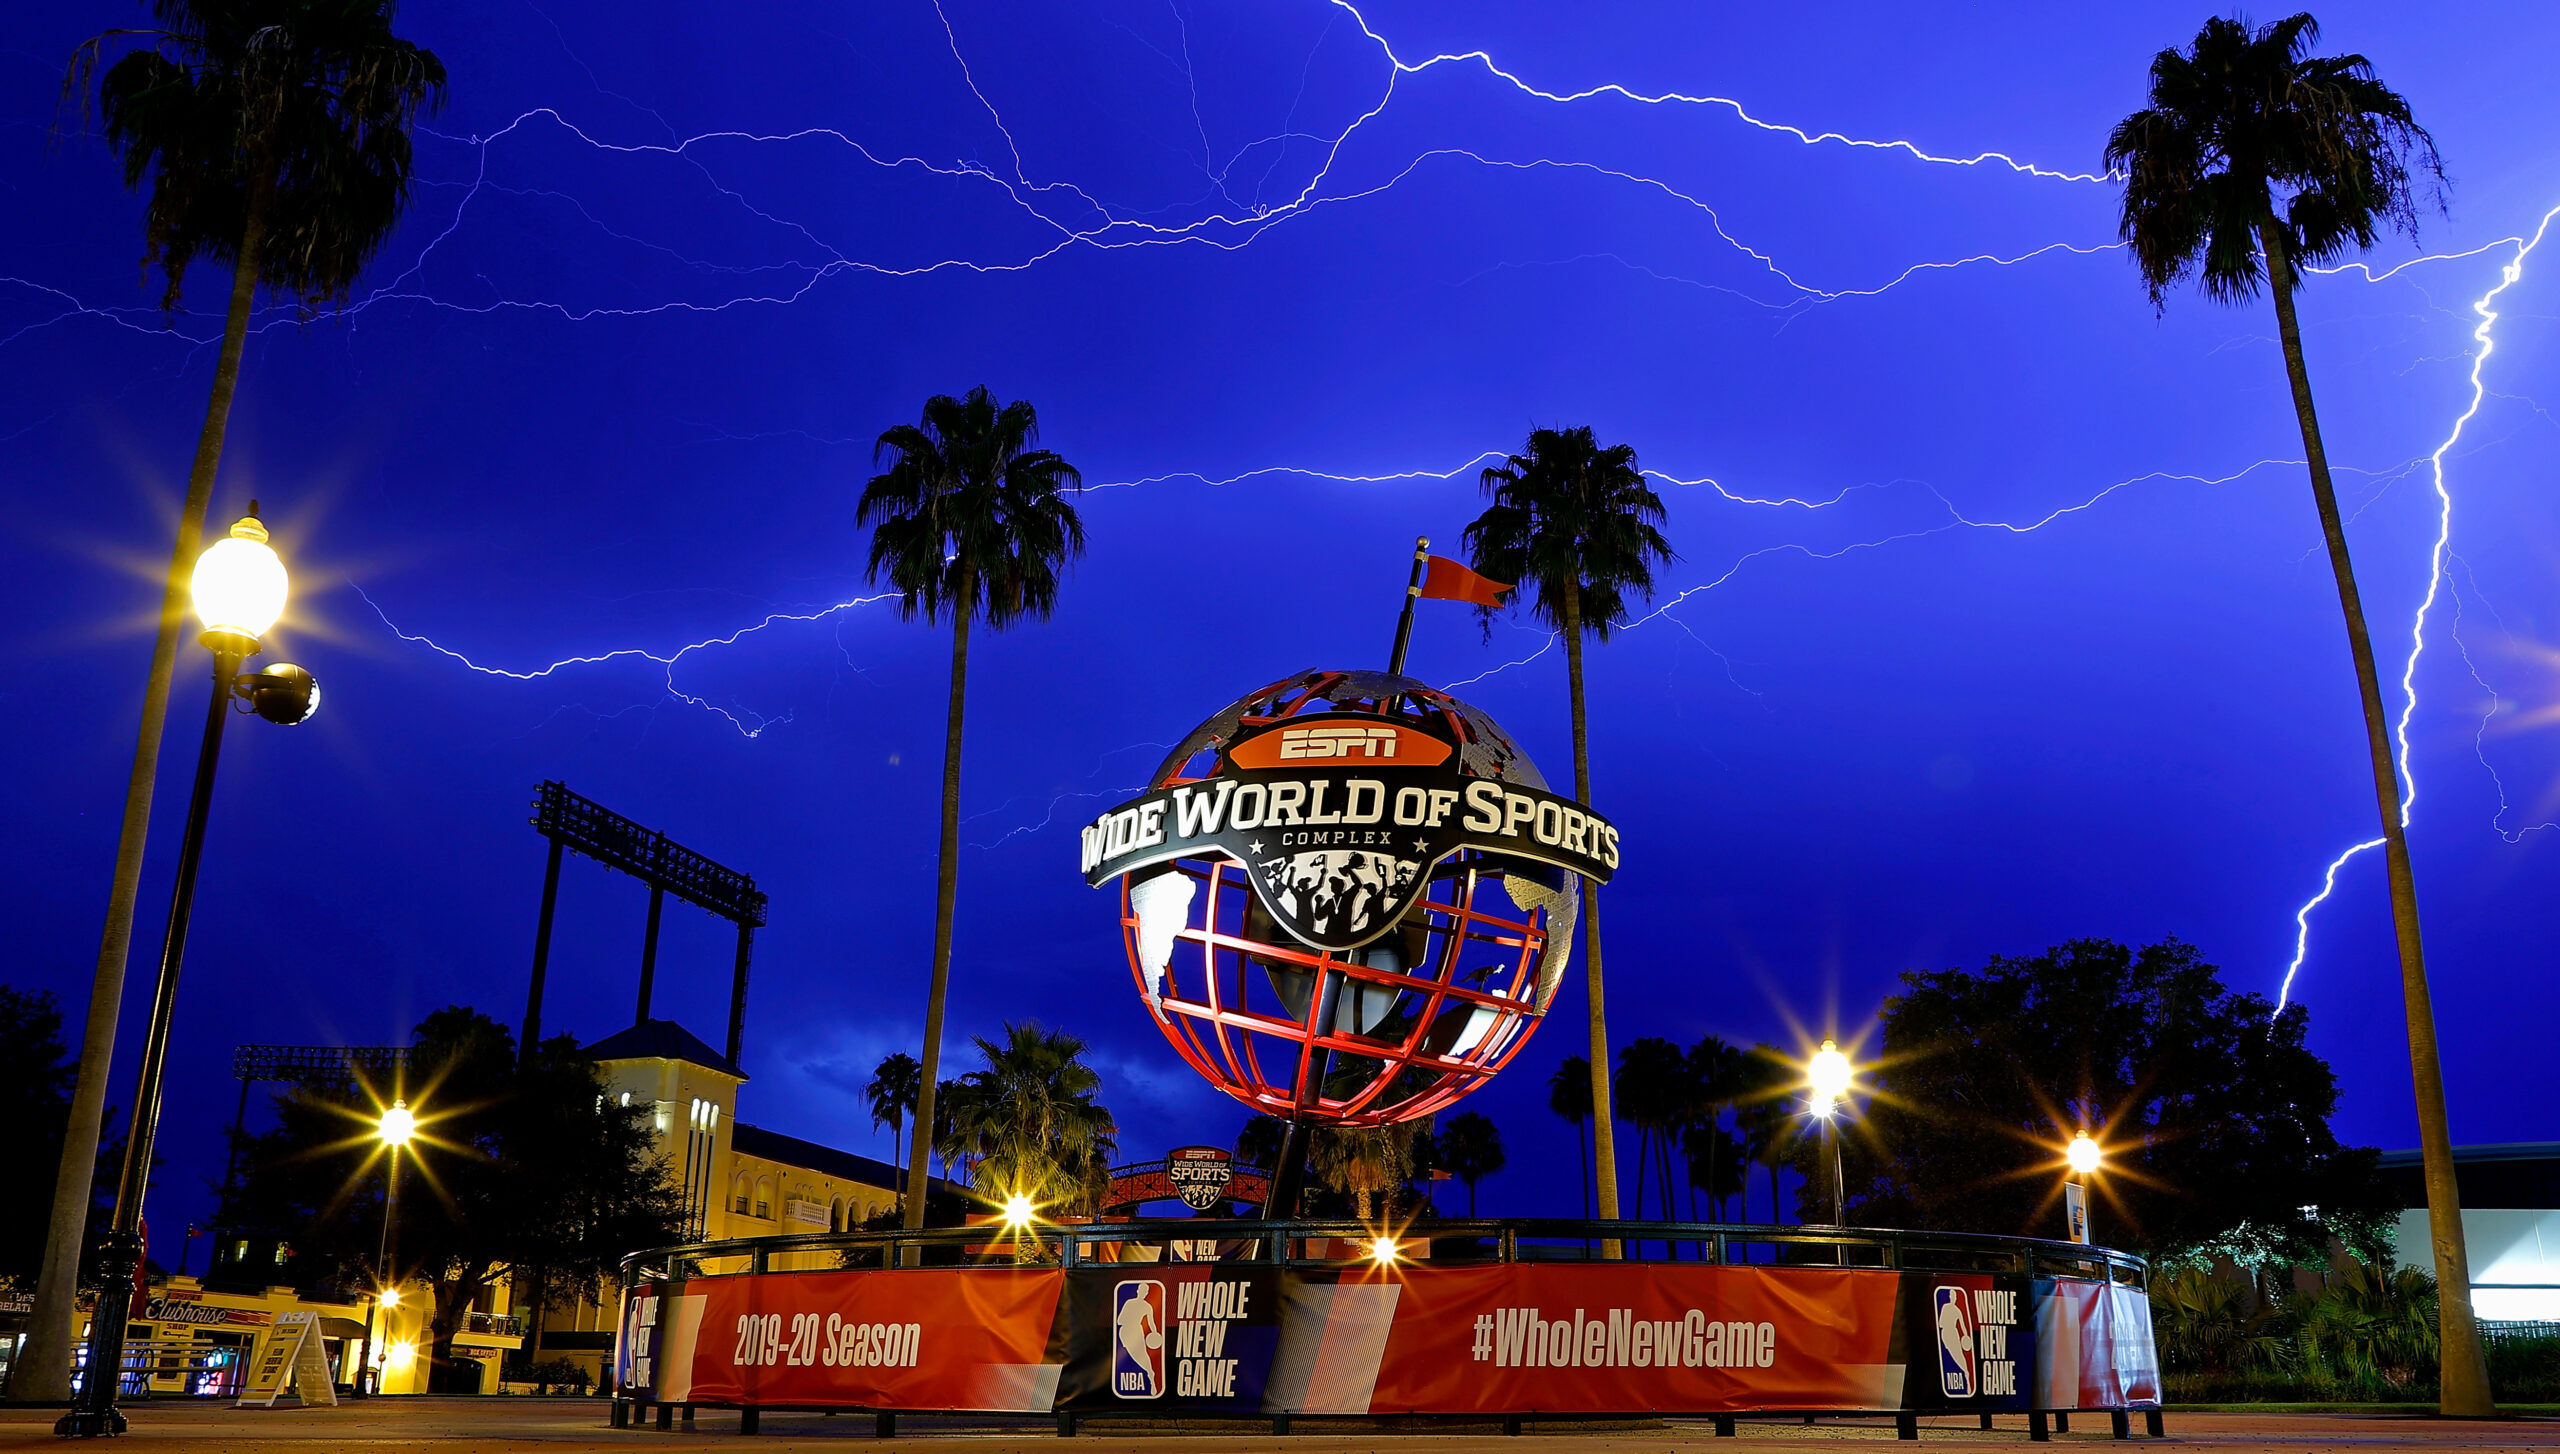 ESPN Wide World of Sports at Disney sports complex for the 2019-20 basketball season